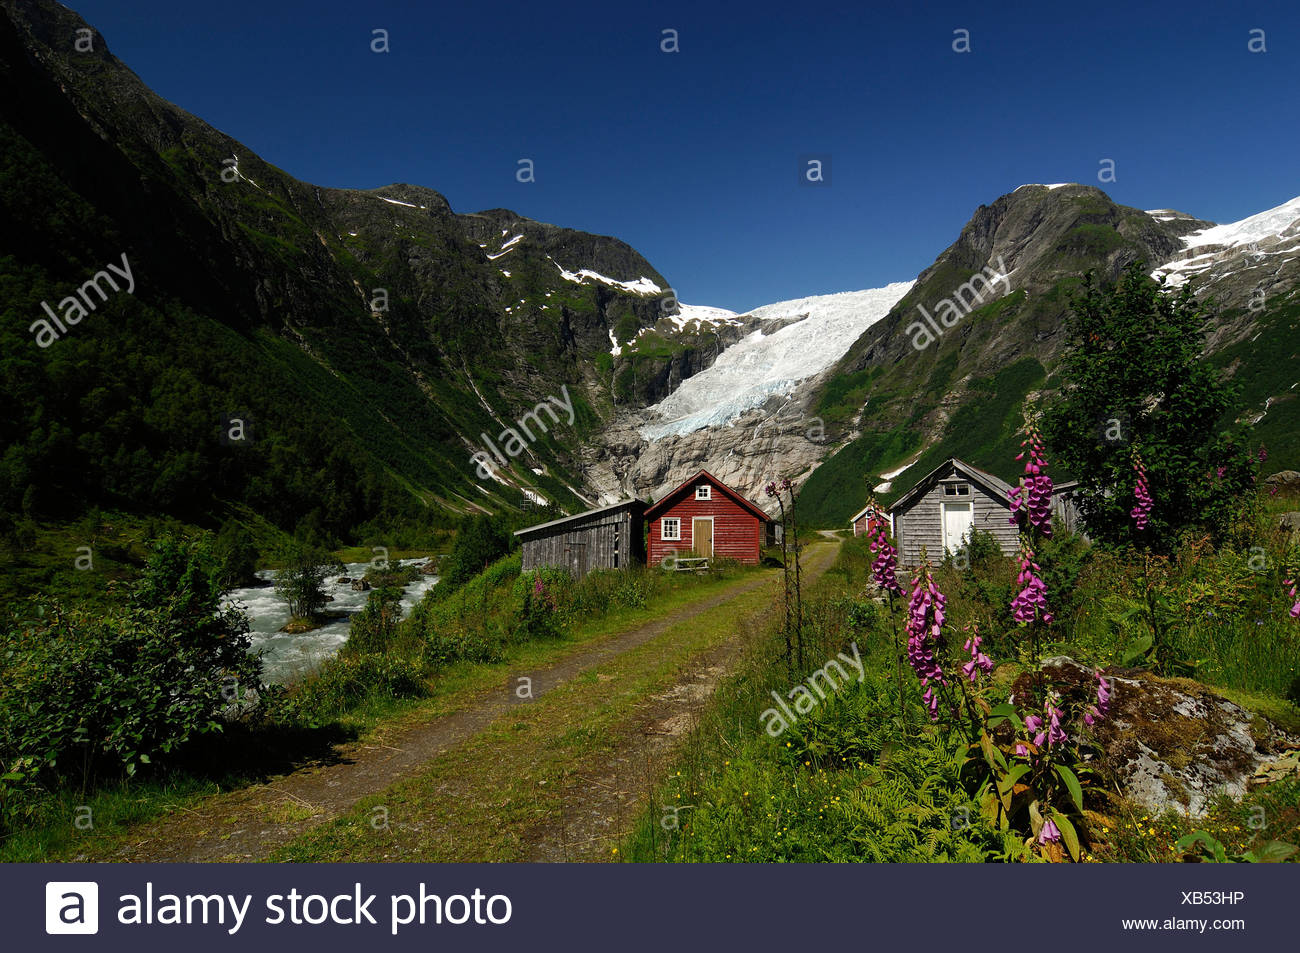 Mountain hut and glacier, Norway Stock Photo